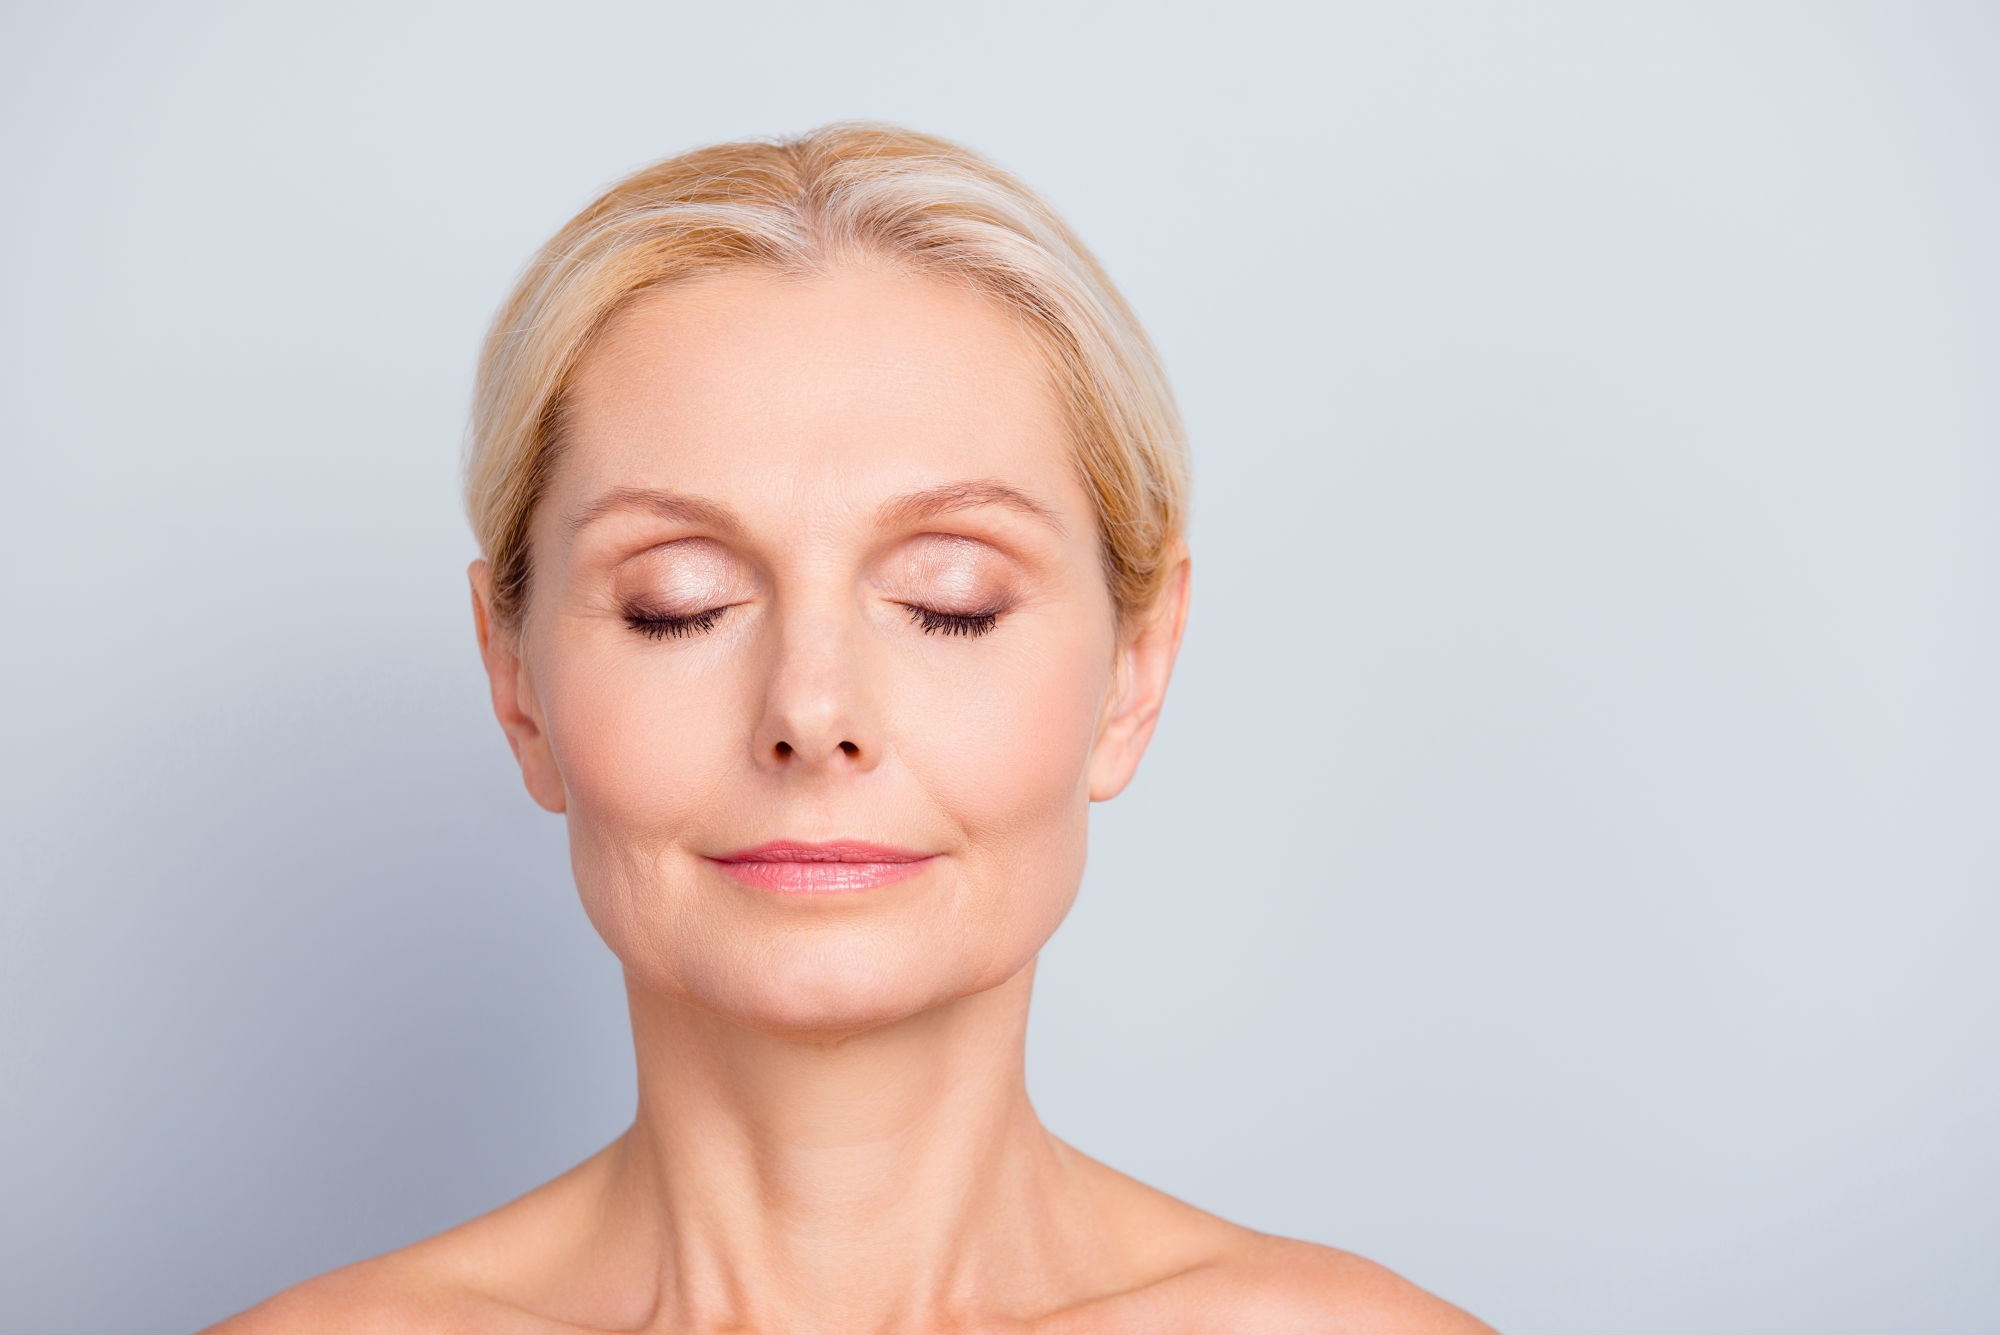 Relax-Neck-Bands-and-Wrinkles-Safely-with-Botulinum Toxin (or more commonly known as Botox)